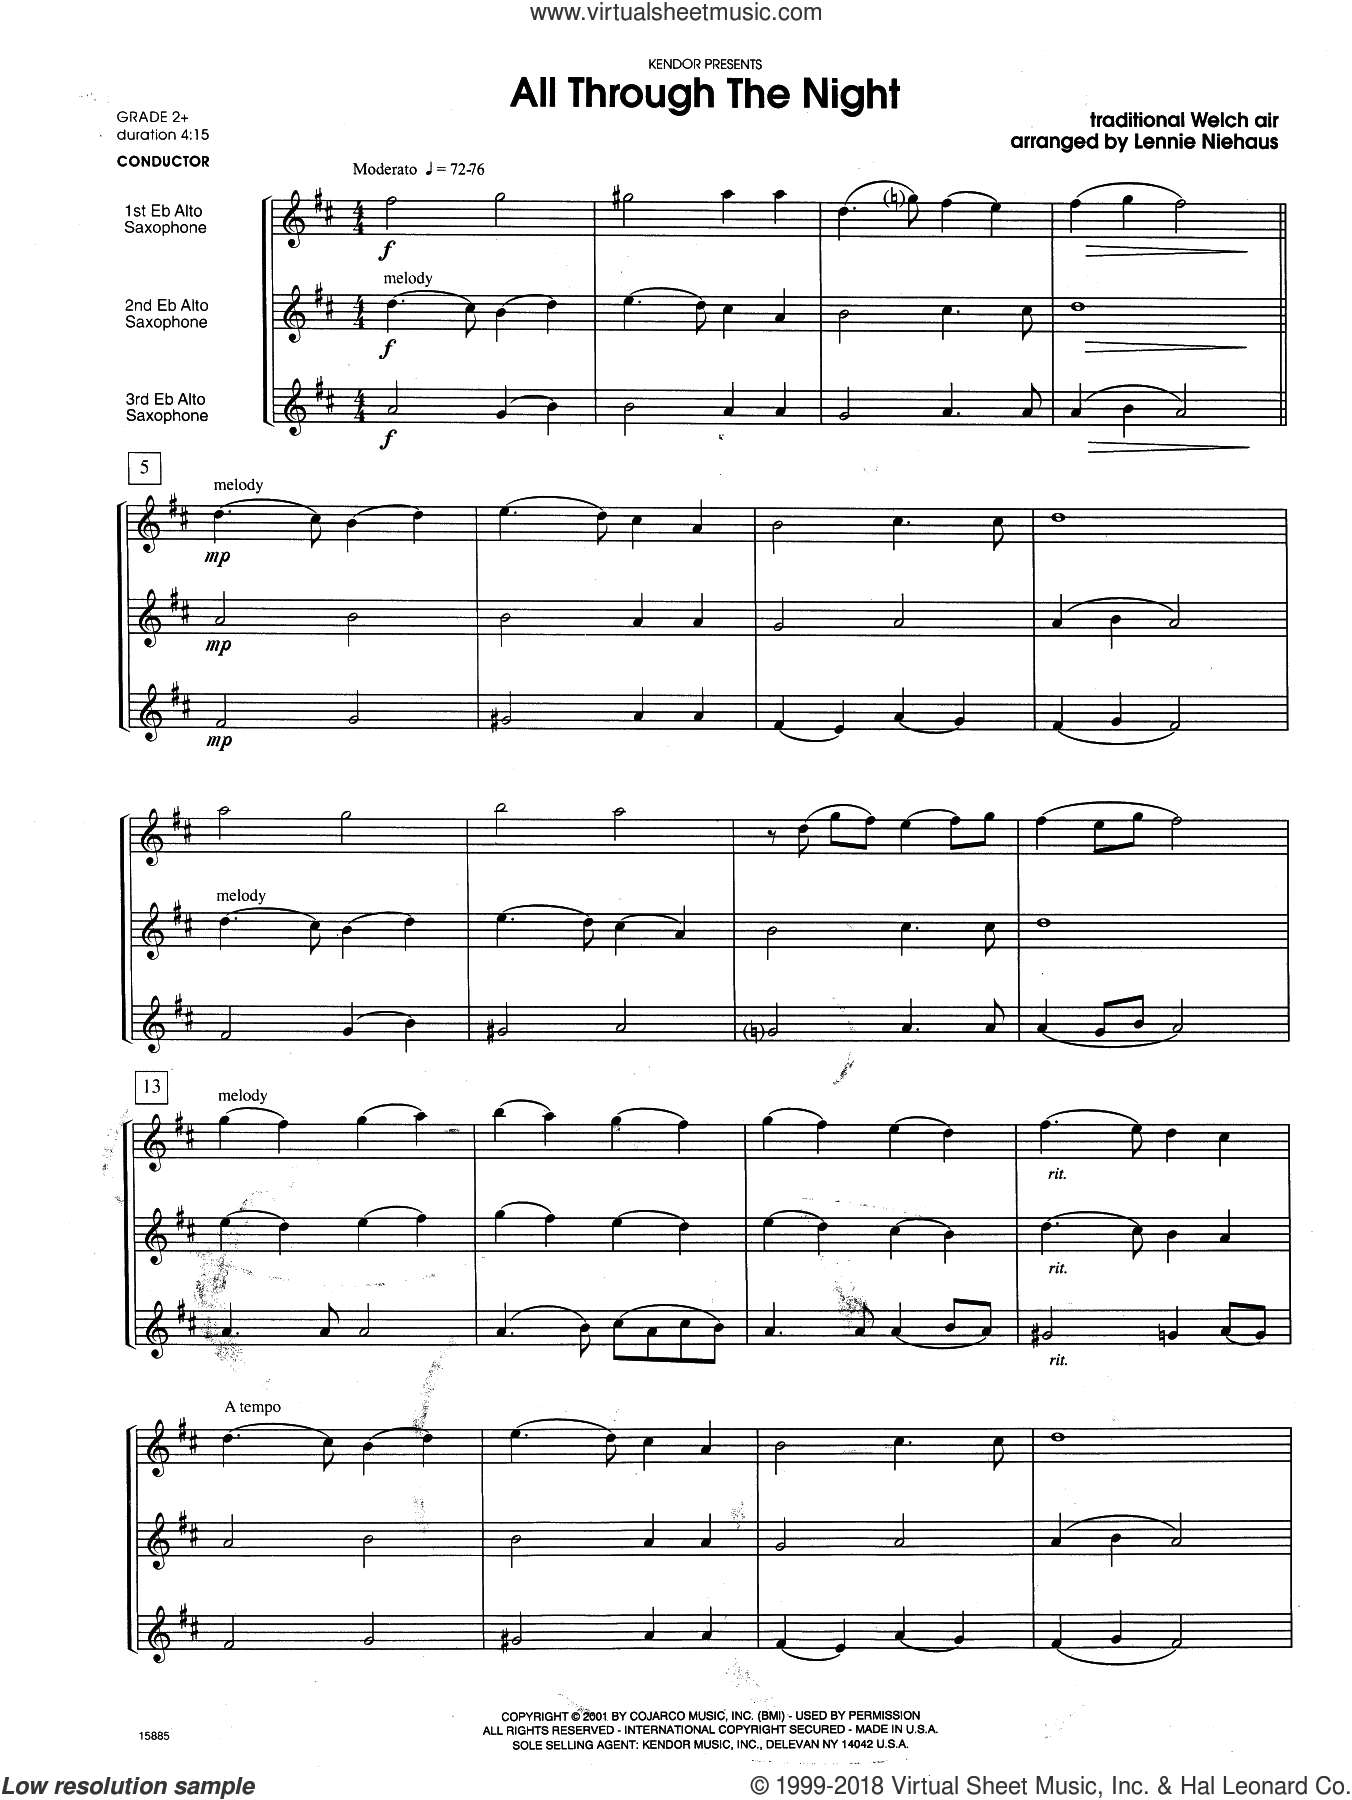 All Through the Night (COMPLETE) sheet music for saxophone trio by Lennie Niehaus, intermediate skill level